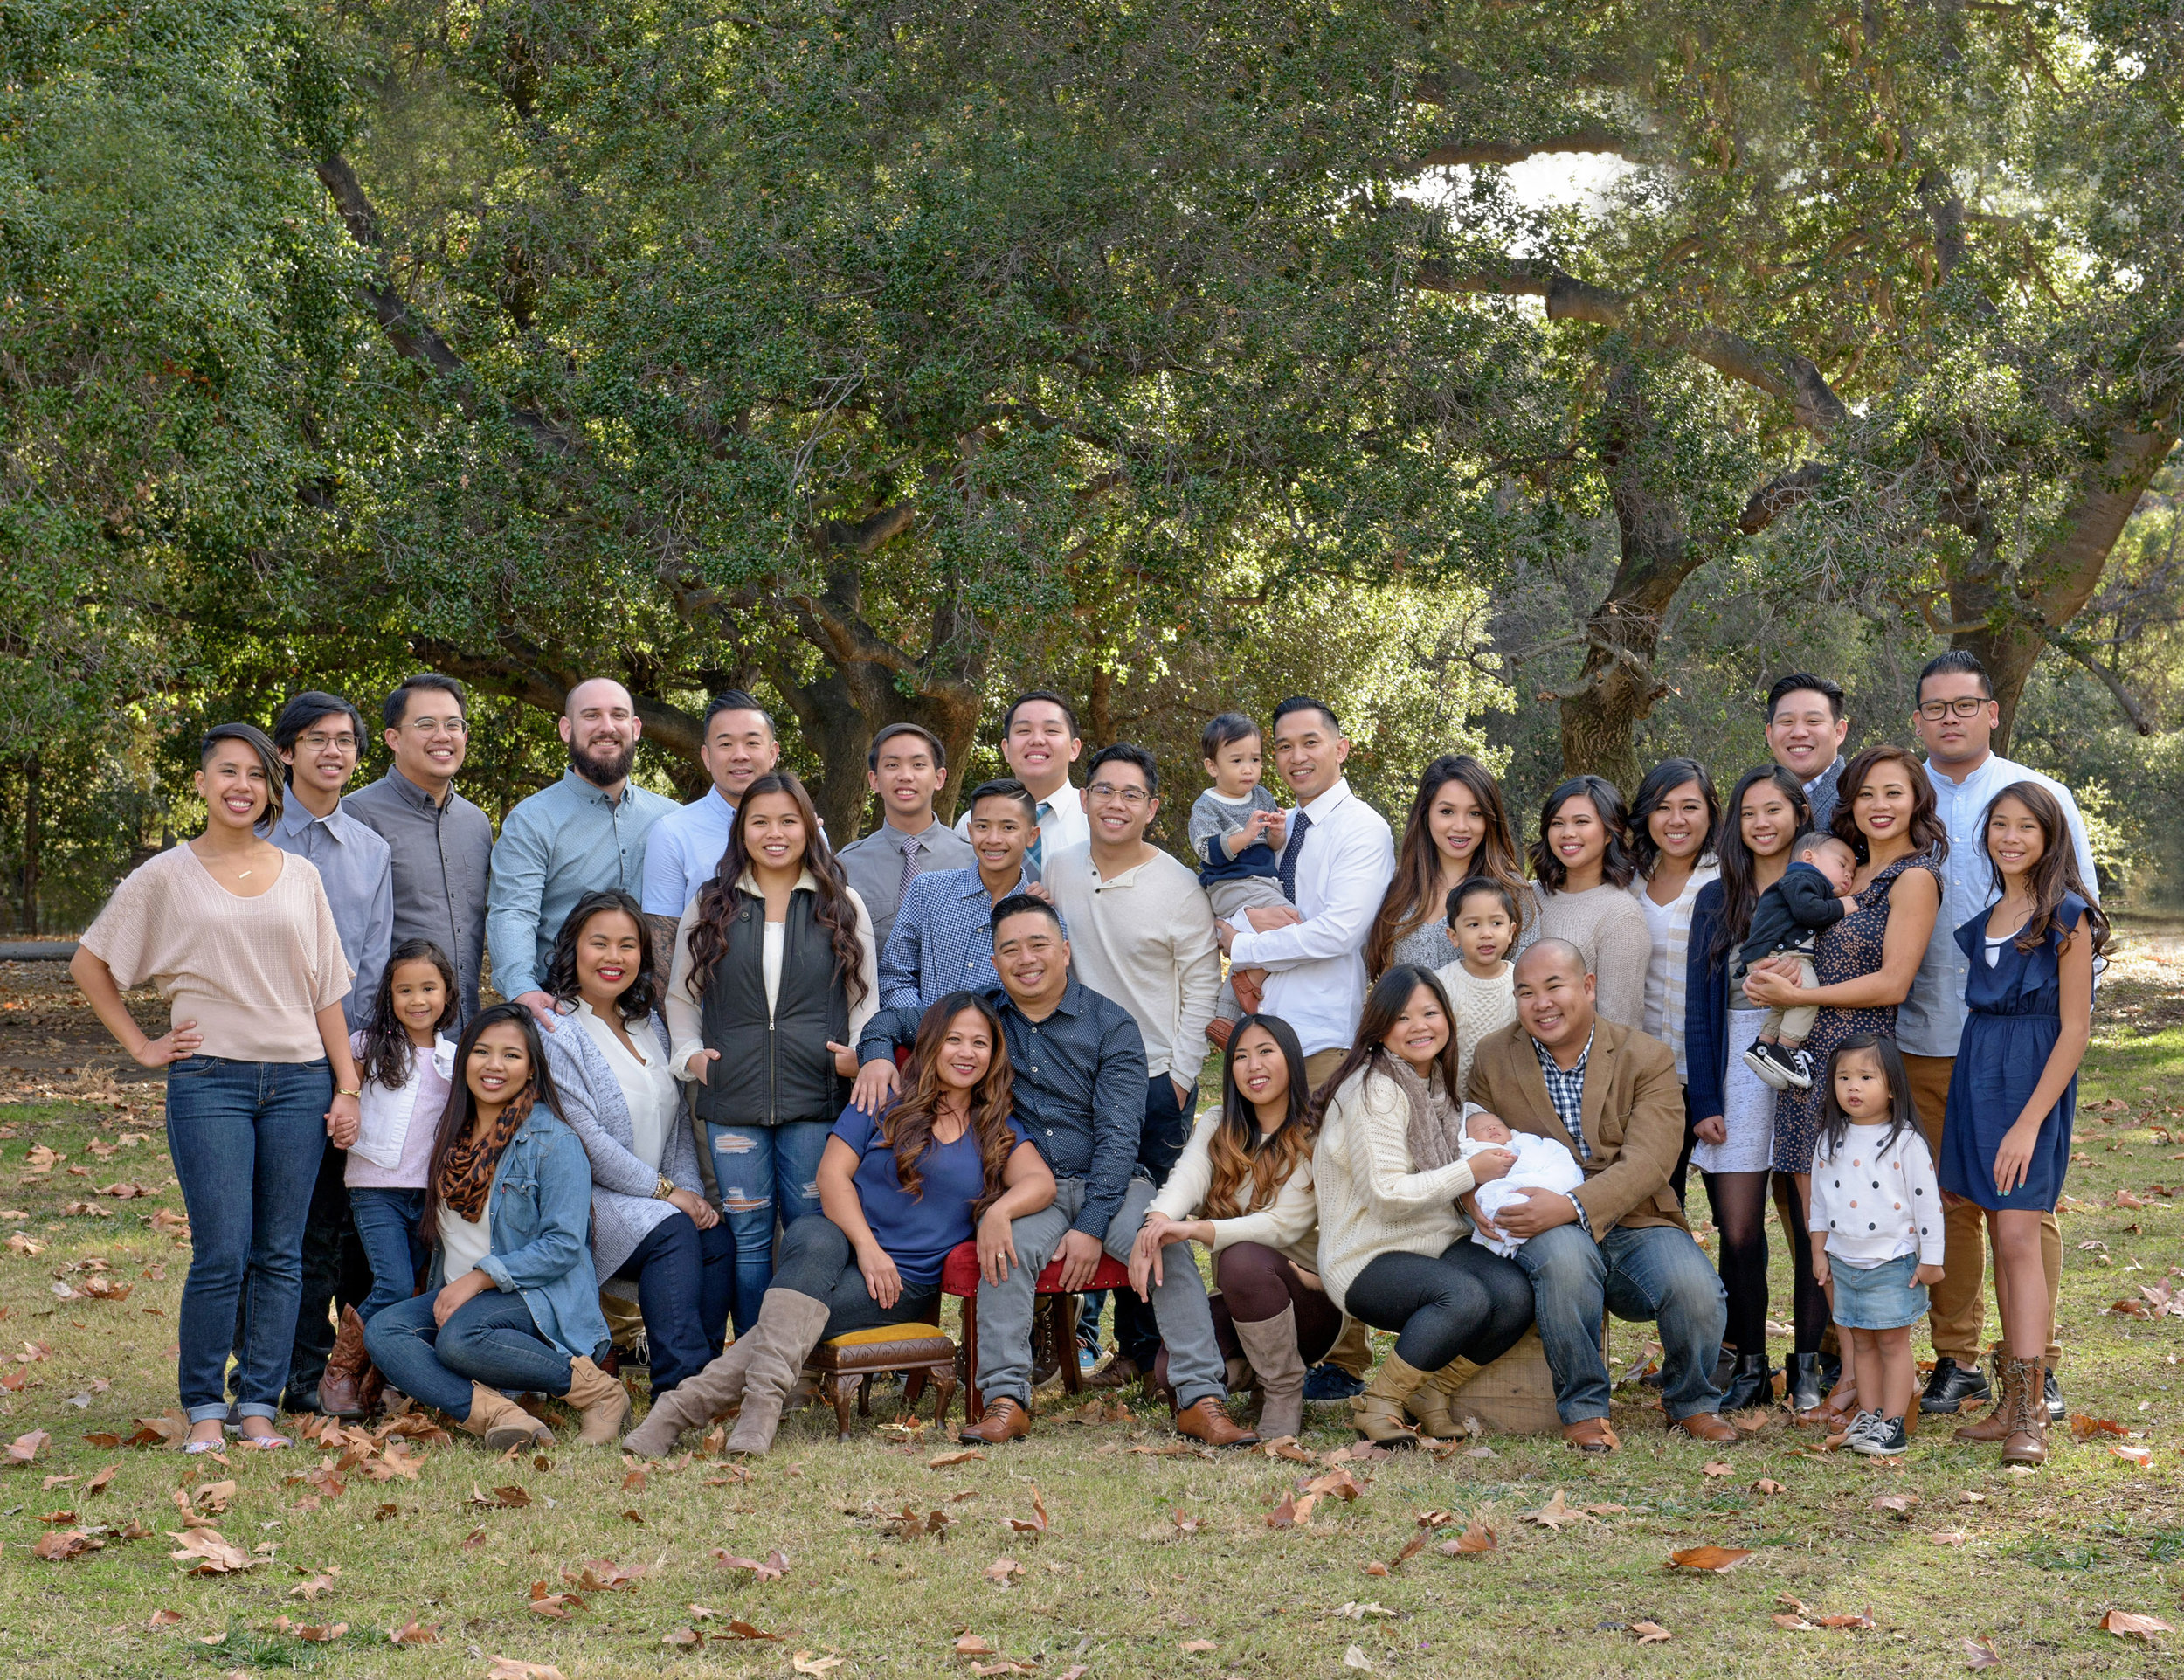 A large gathering of cousins posing for a family photograph